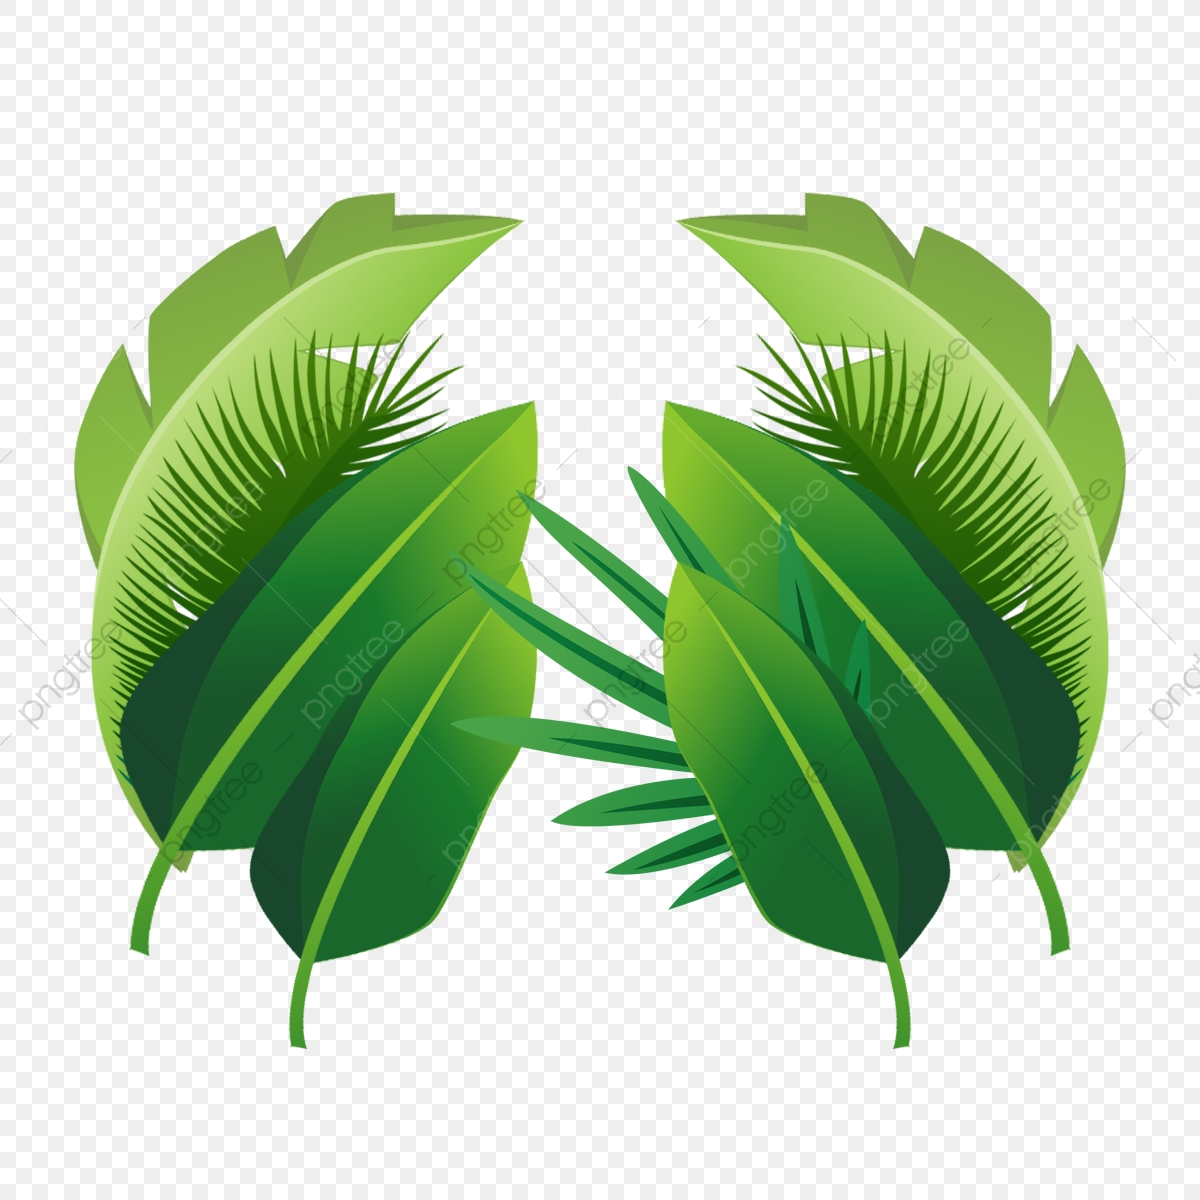 Tropical Leaves Png Vector Psd And Clipart With Transparent Background For Free Download Pngtree Download premium vector of round golden frame on a tropical background vector by adj about dark jungle, palm leaf, palm tree, summer and. https pngtree com freepng plant tropical leaves 3550396 html